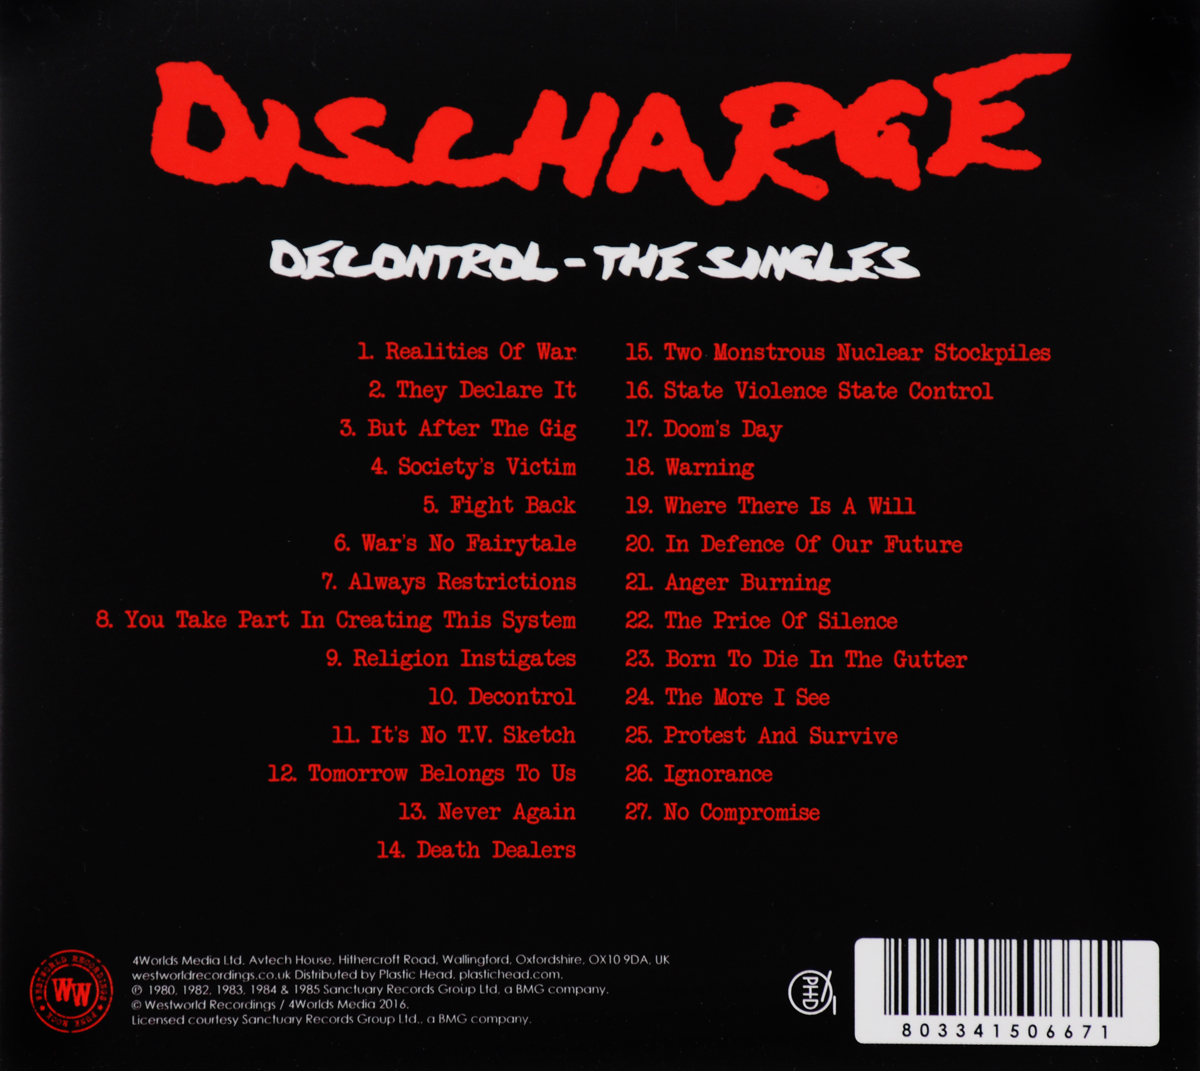 Discharge.  Decontrol - The Singles Волтэкс-инвест,Westworld Recordings